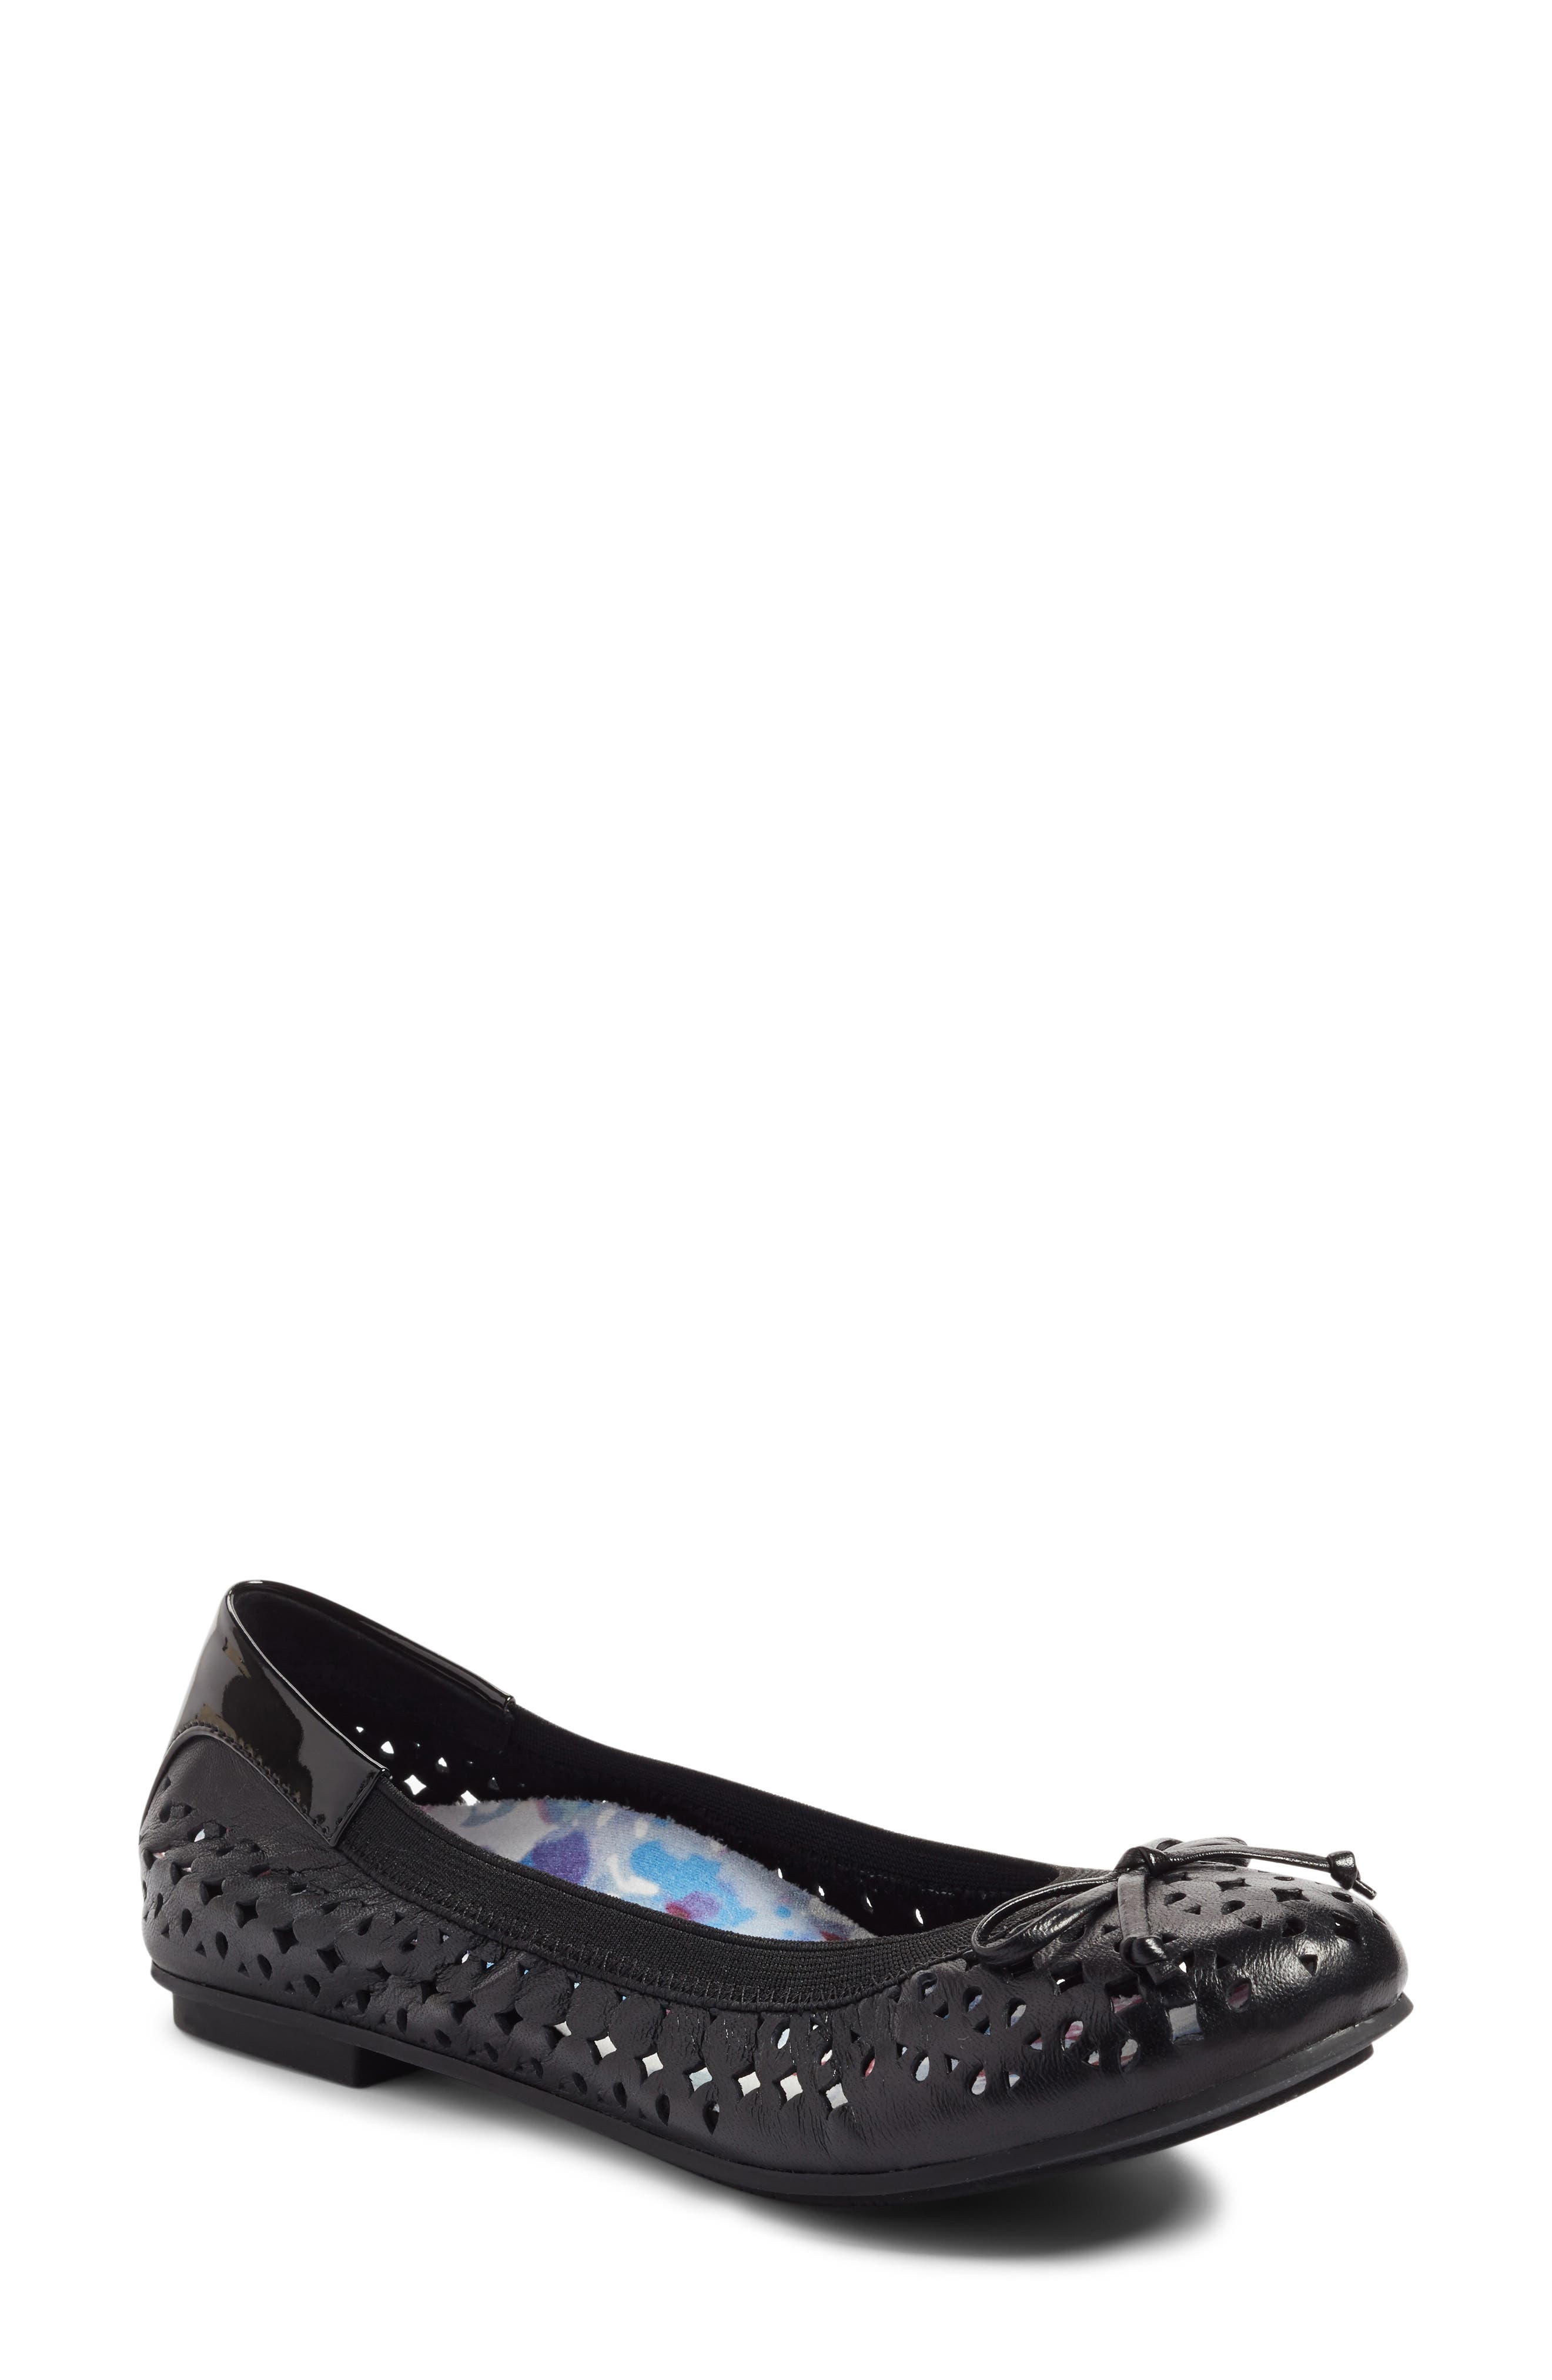 'Surin' Perforated Ballet Flat,                             Alternate thumbnail 7, color,